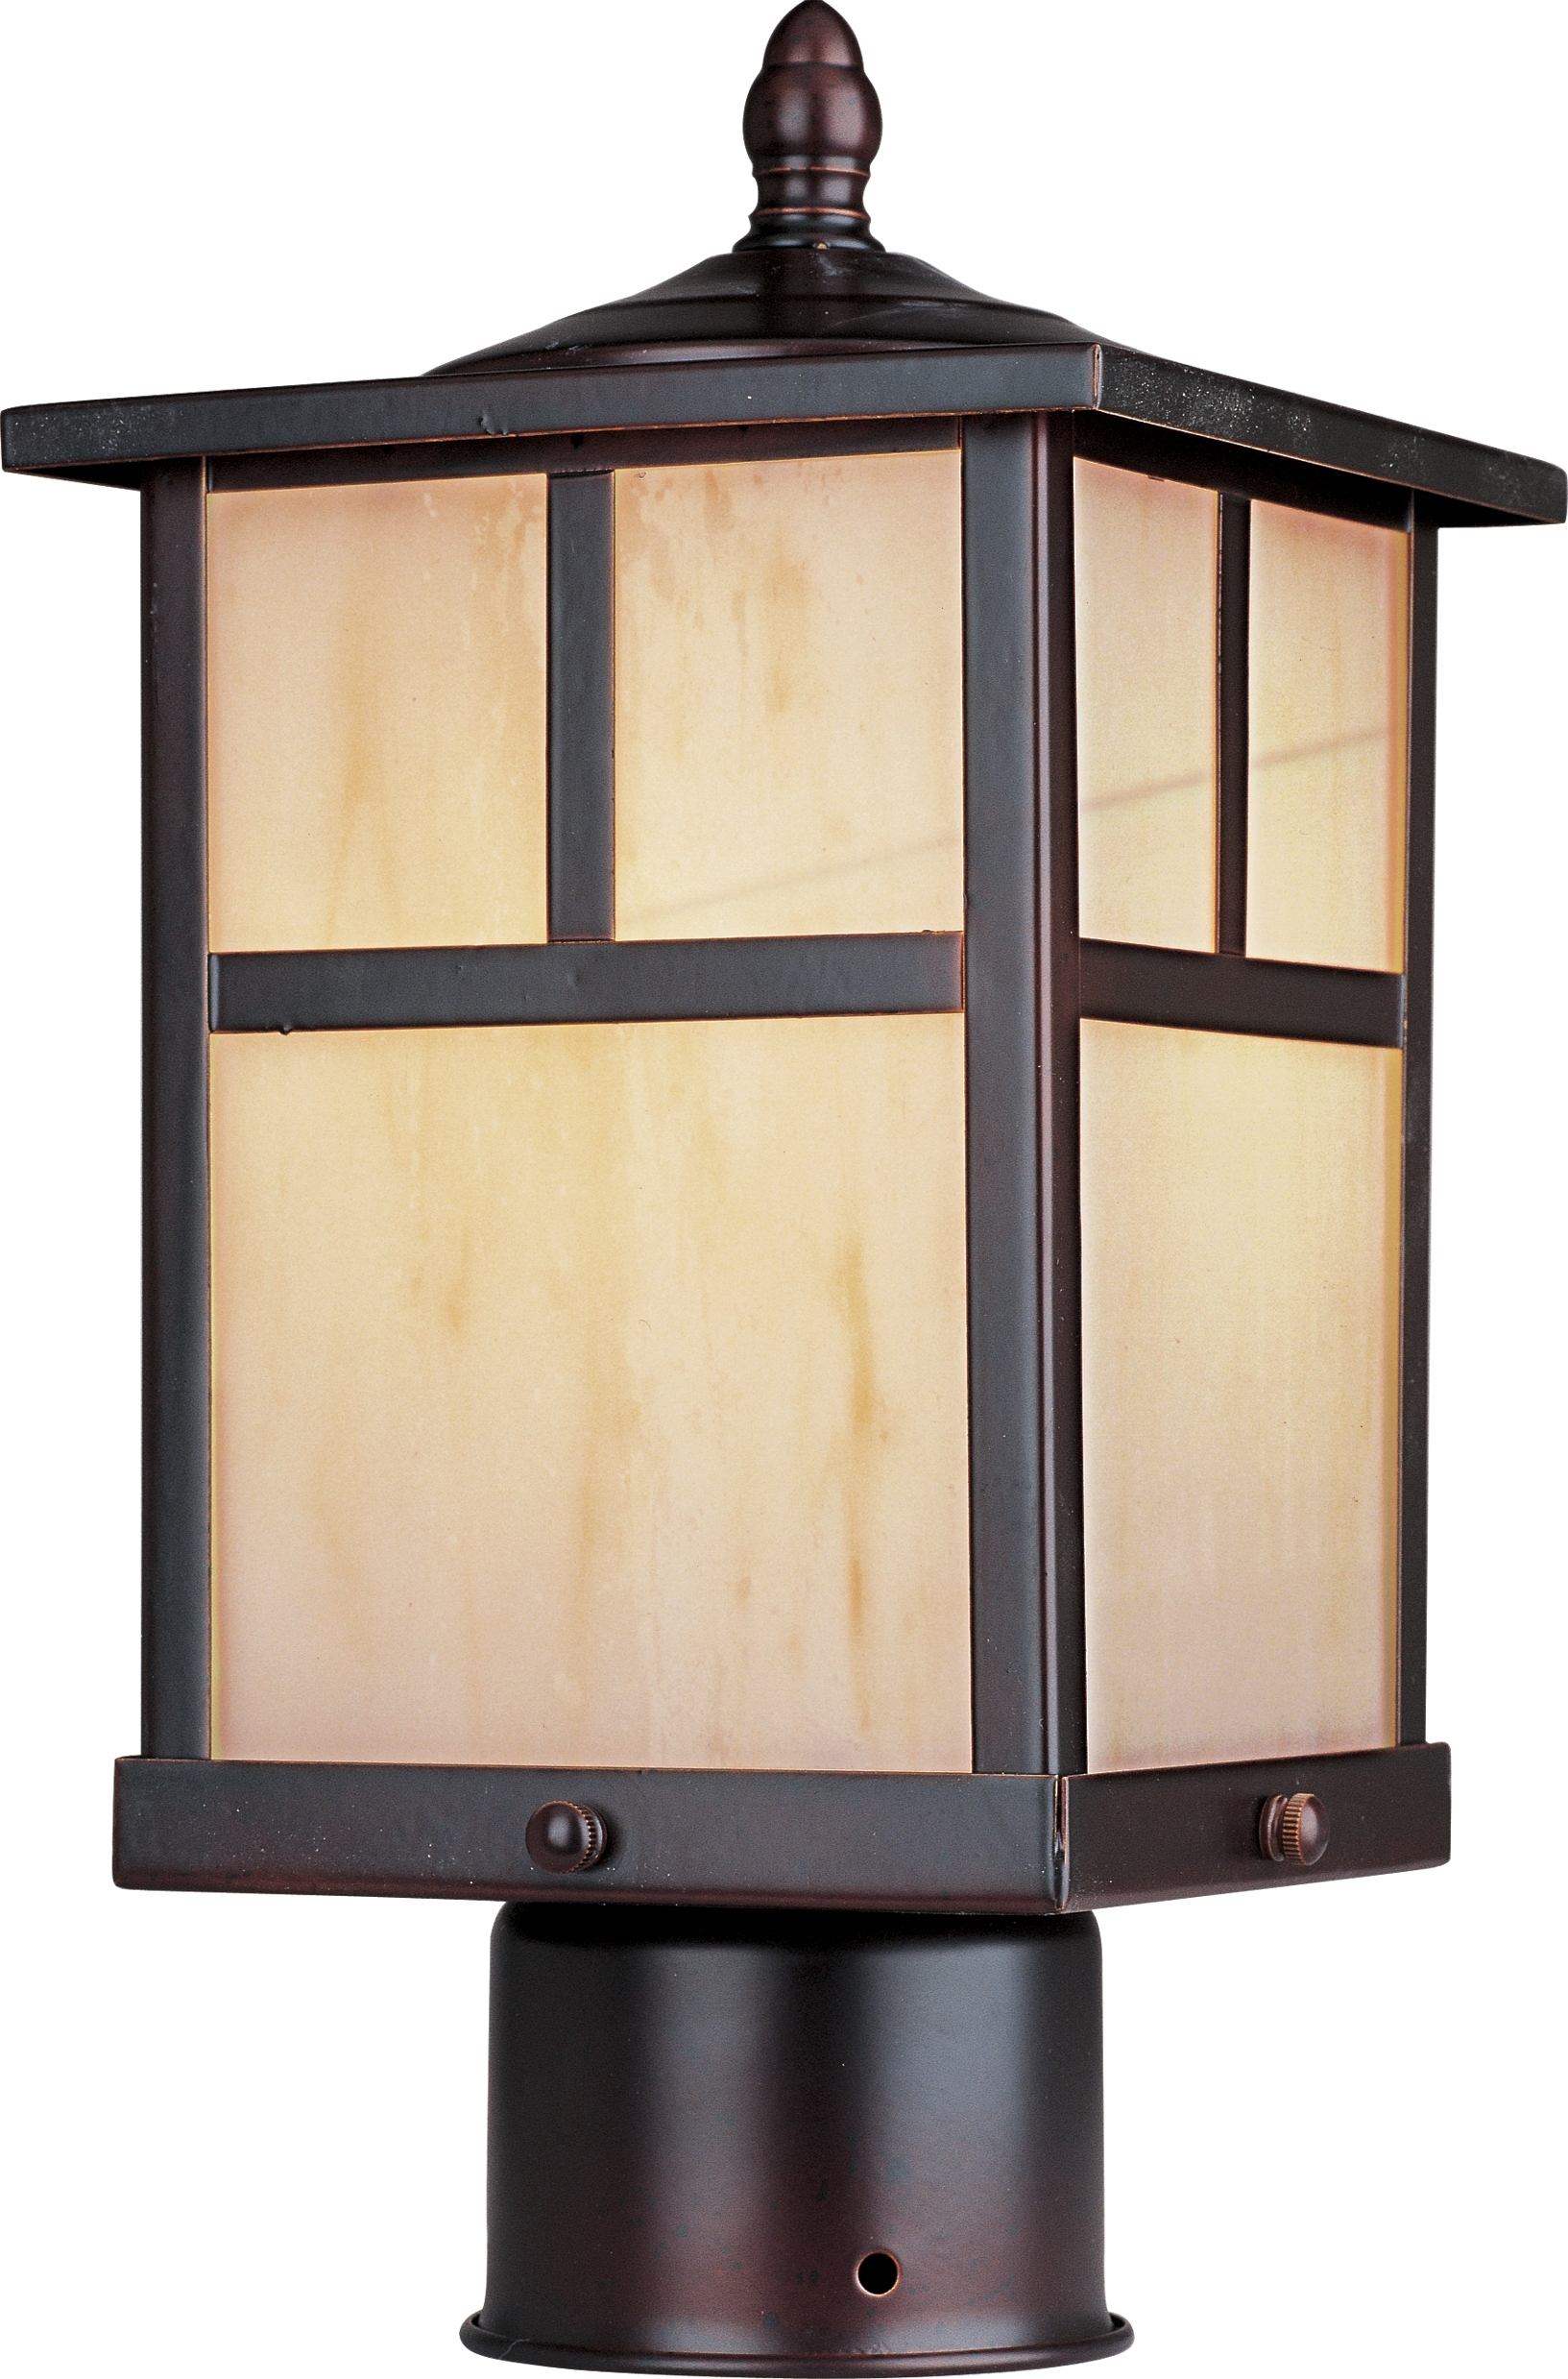 Coldwater Led 1 Light Outdoor Pole/post Lantern – Outdoor Pole/post With Modern Led Post Lights At  Home Depot (#1 of 15)